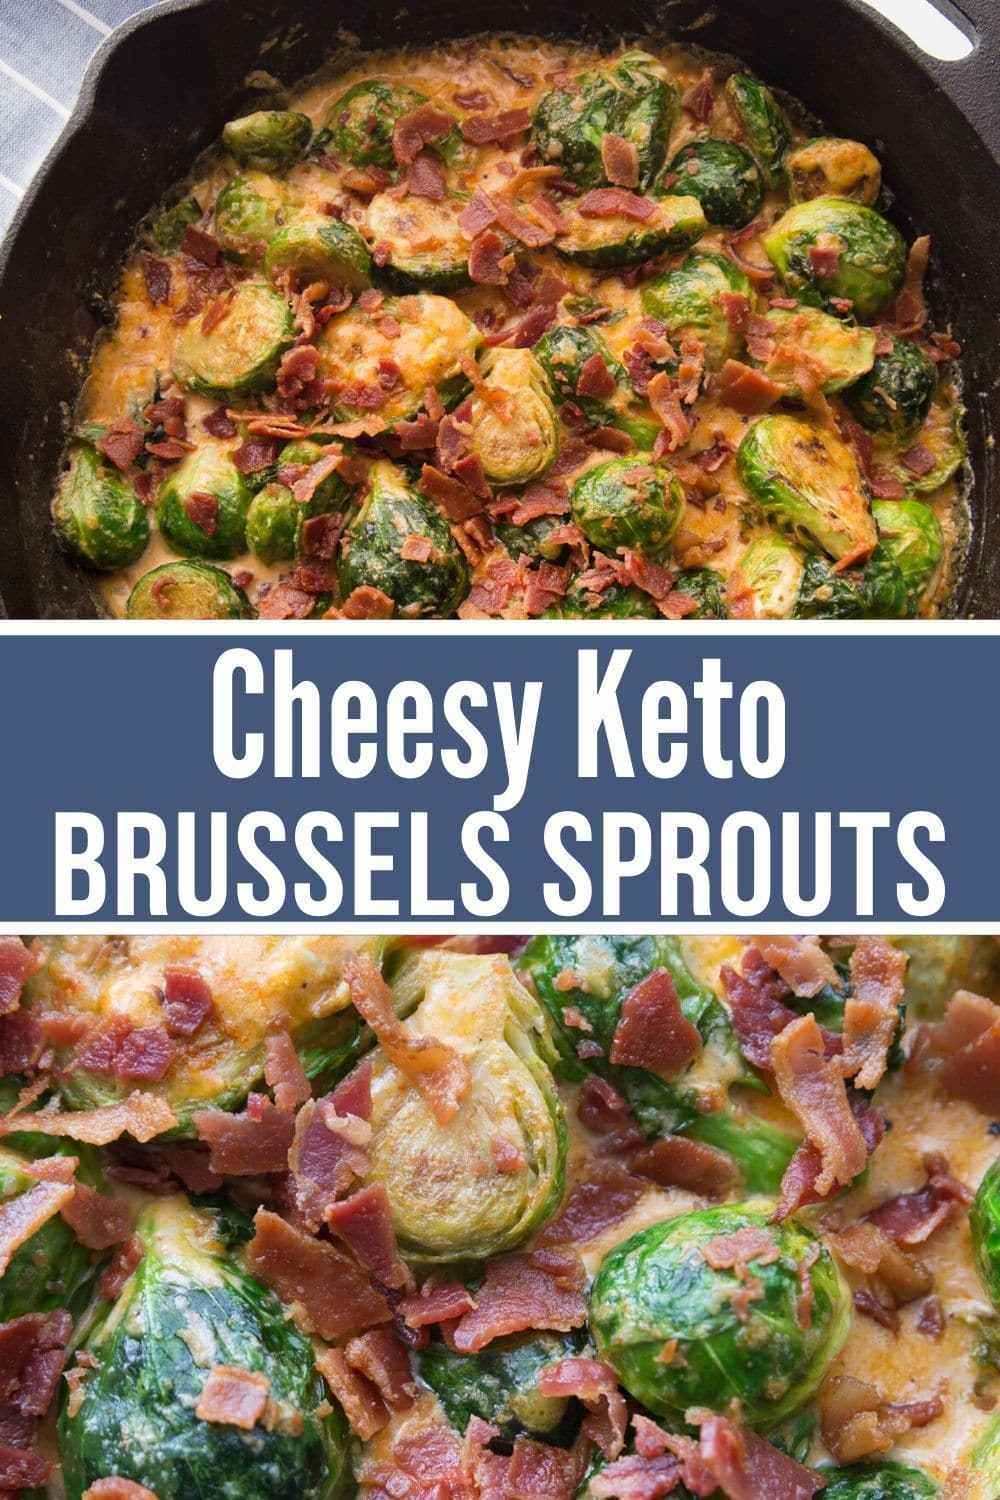 Cheesy Keto Brussels Sprouts Bacon Recipe In 2020 Brussel Sprouts Bacon Brussel Sprouts Sprouts With Bacon